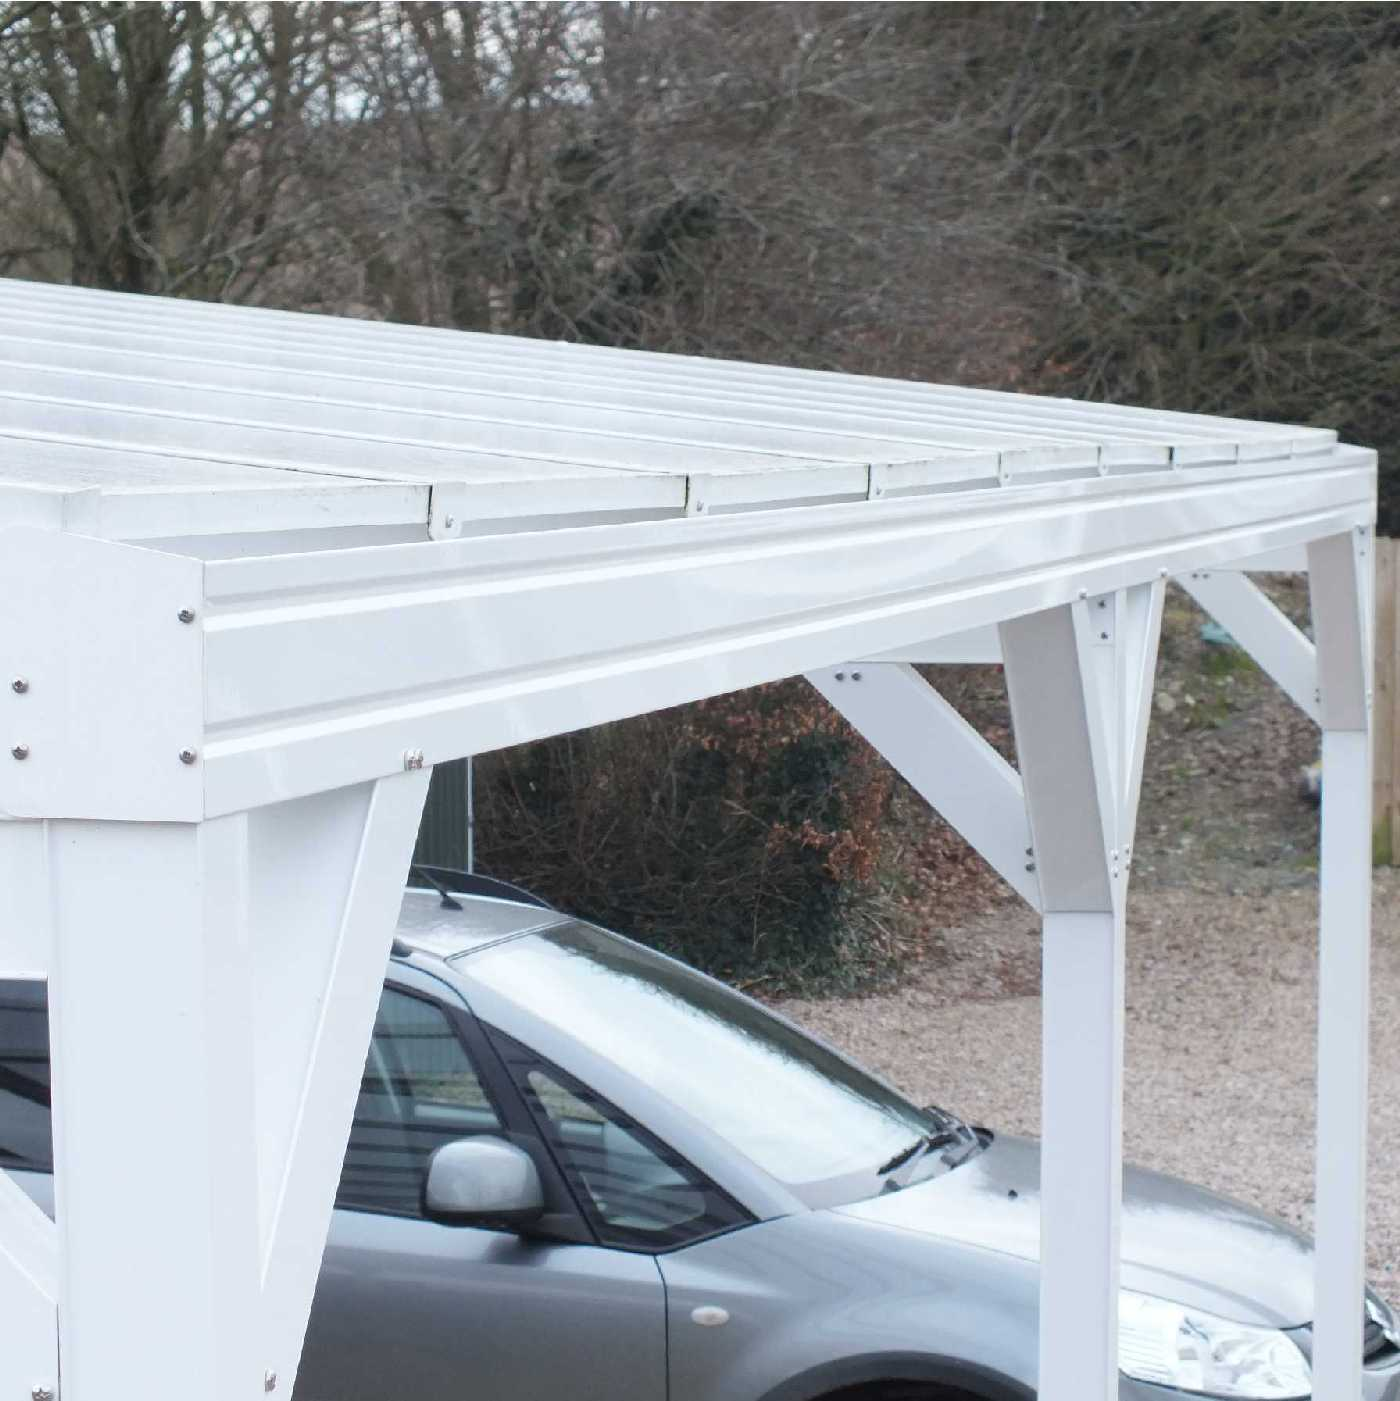 Omega Smart Free-Standing, MonoPitch Roof Canopy with 16mm Polycarbonate Glazing - 4.2m (W) x 4.0m (P), (6) Supporting Posts from Omega Build